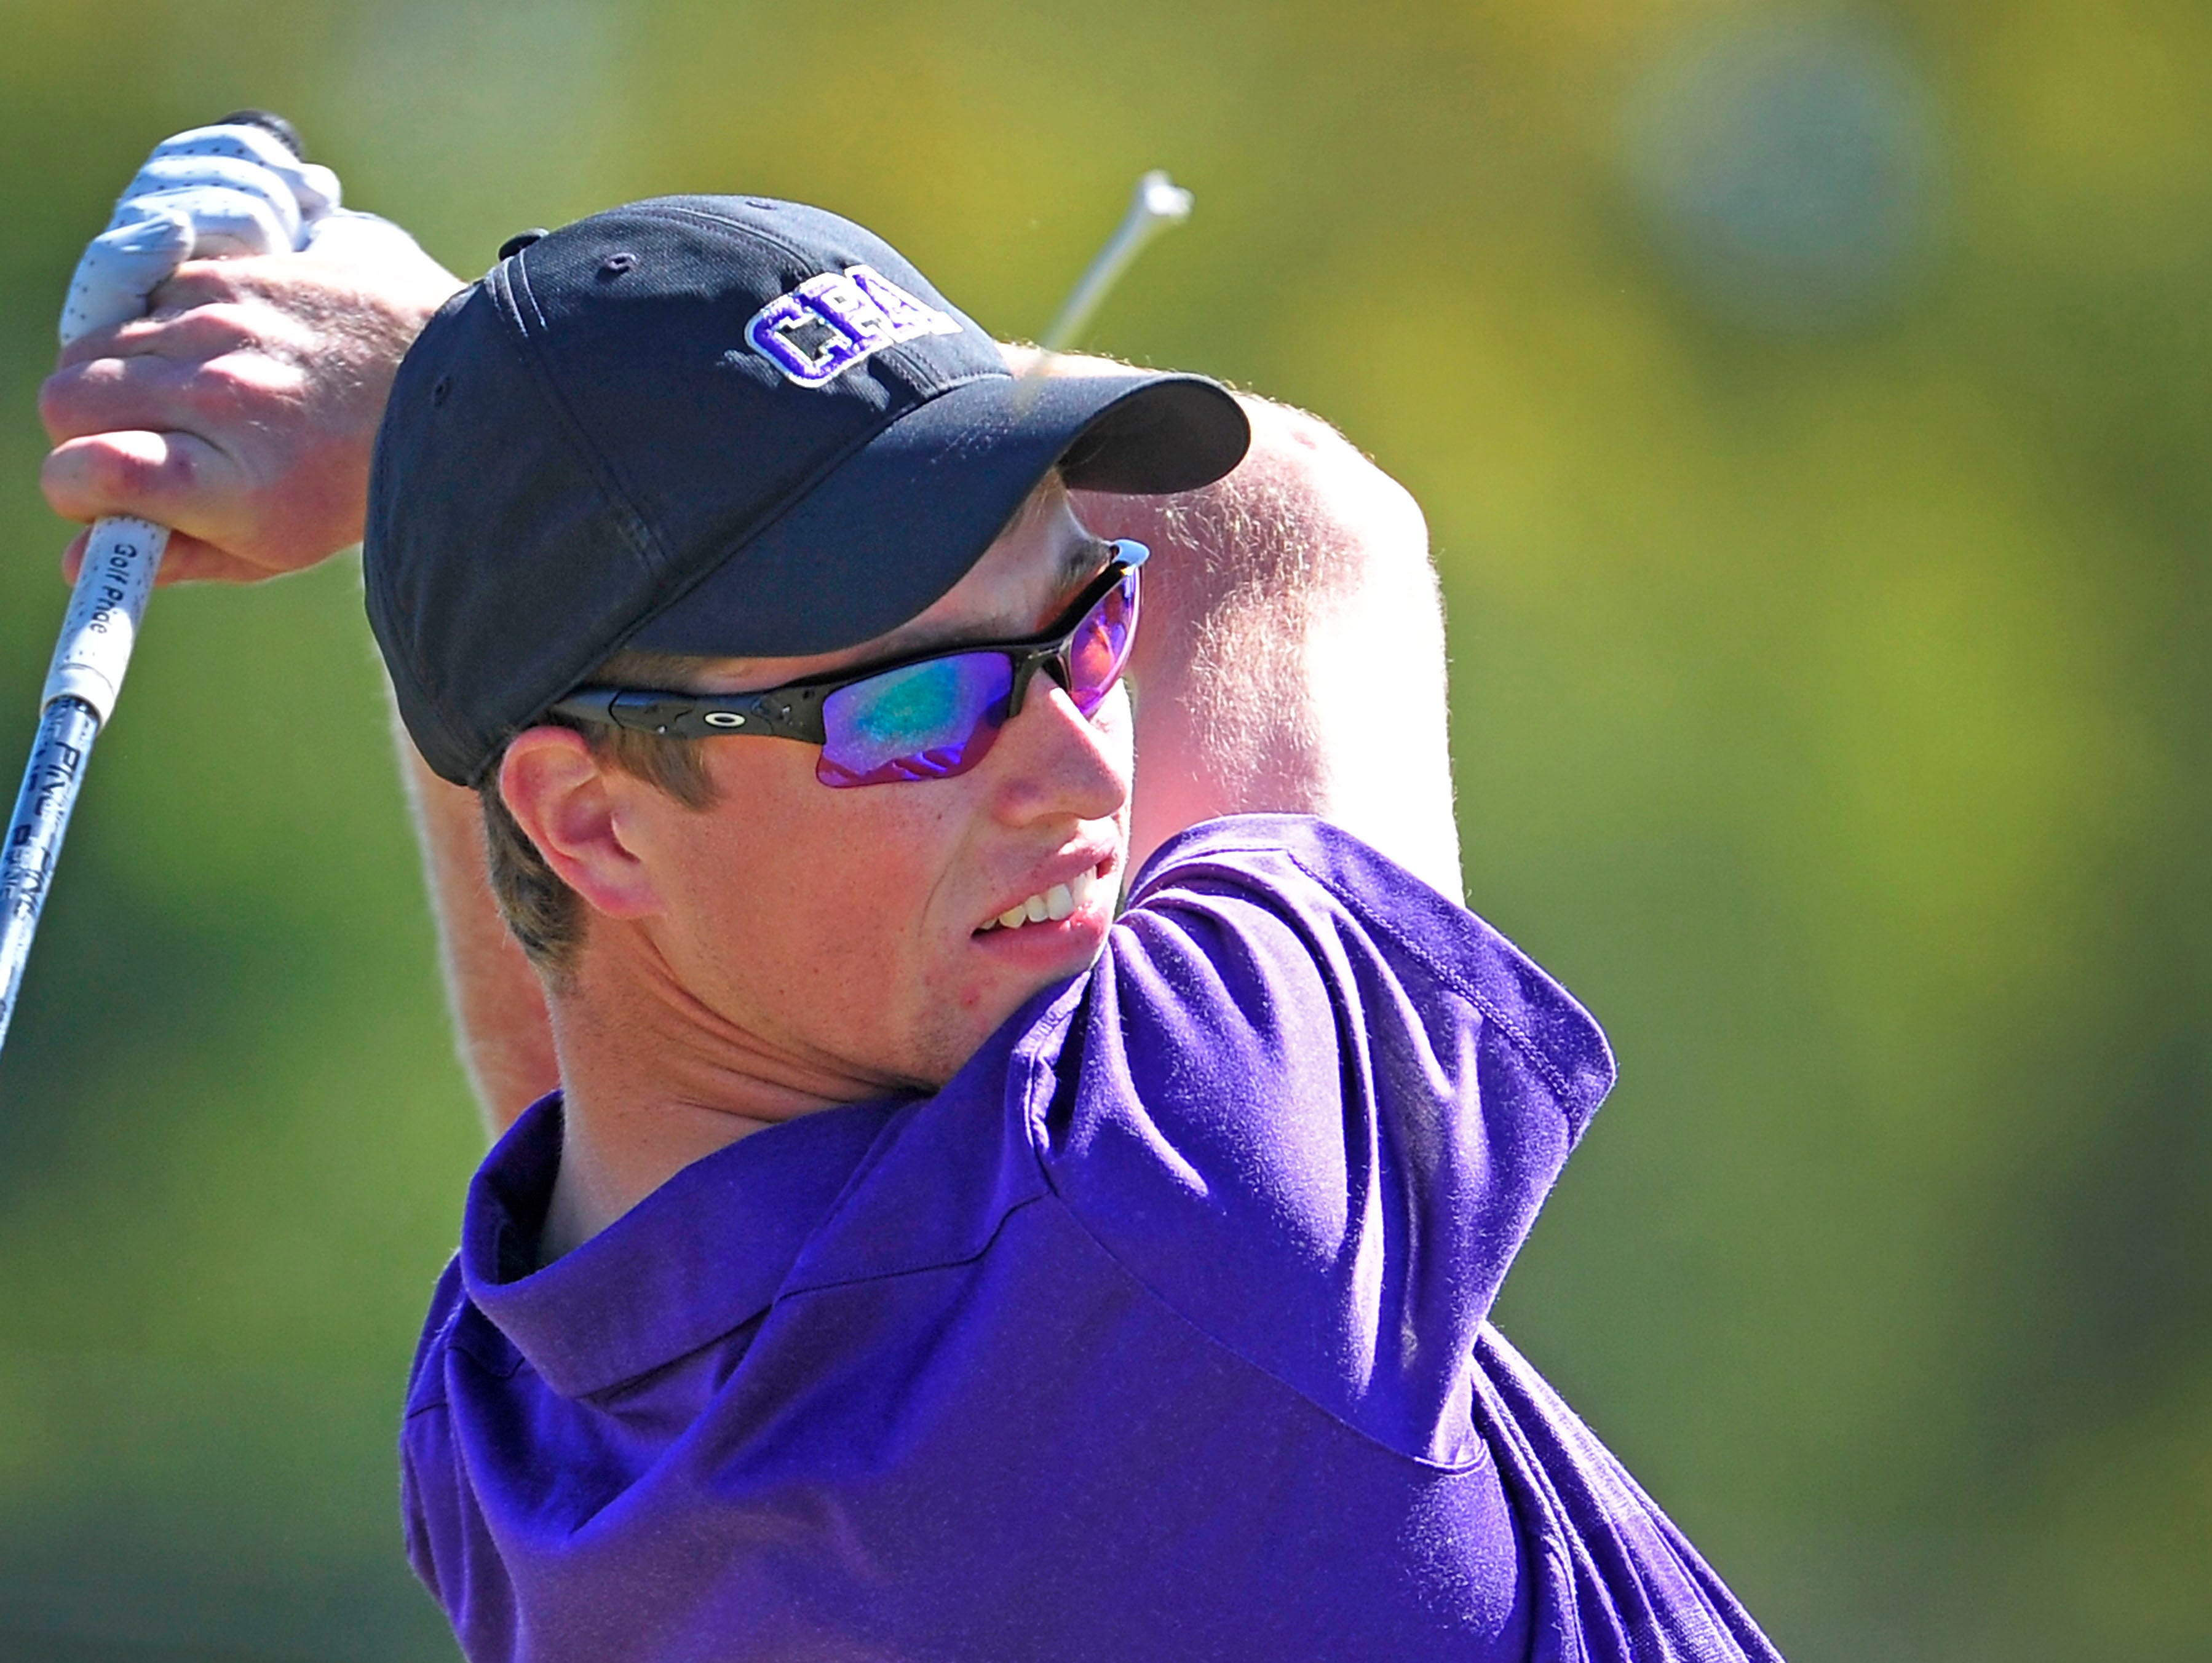 CPA's Grayson Davis watches his tee shot on the seventh hole during the Class A/AA State Golf Tournament at WillowBrook Golf Club in Manchester, Tenn., Wednesday, Oct. 14, 2015.